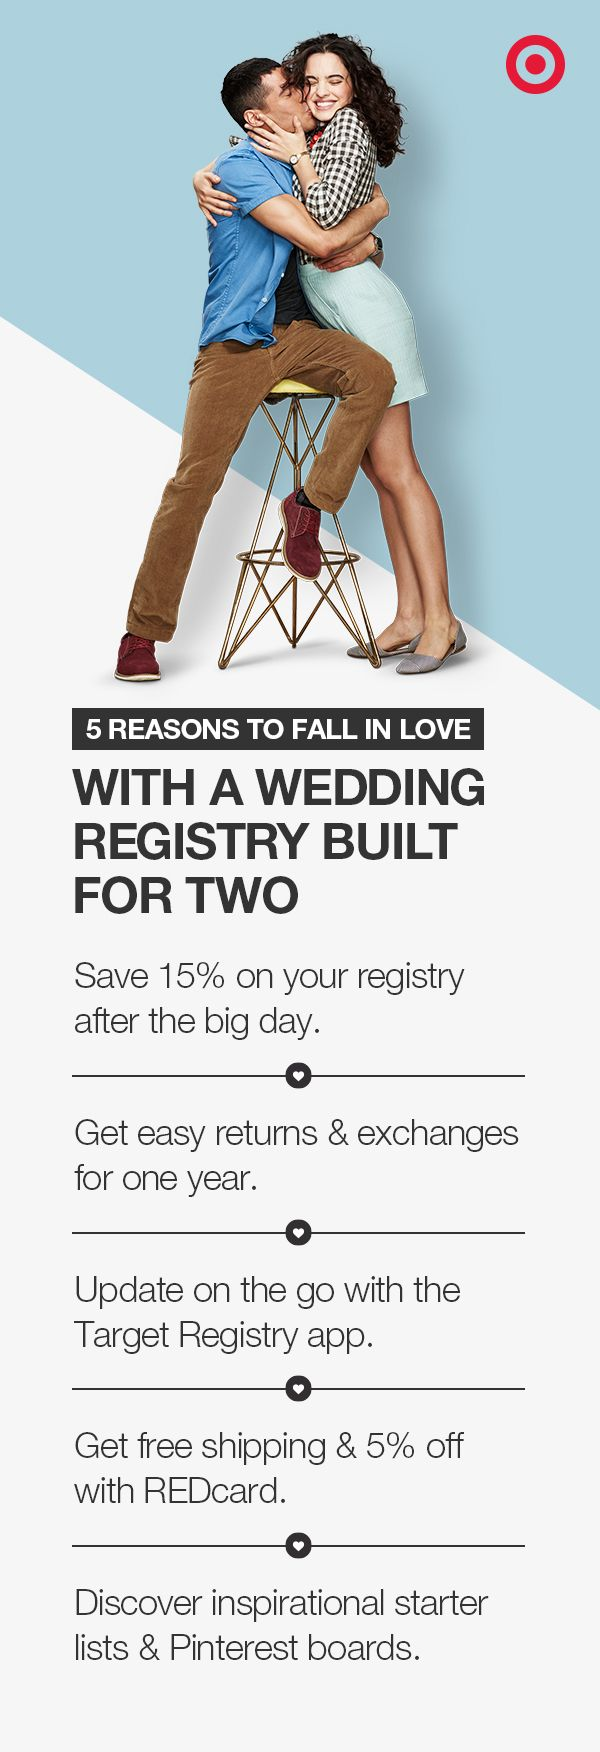 Five great reasons to start your wedding registry at